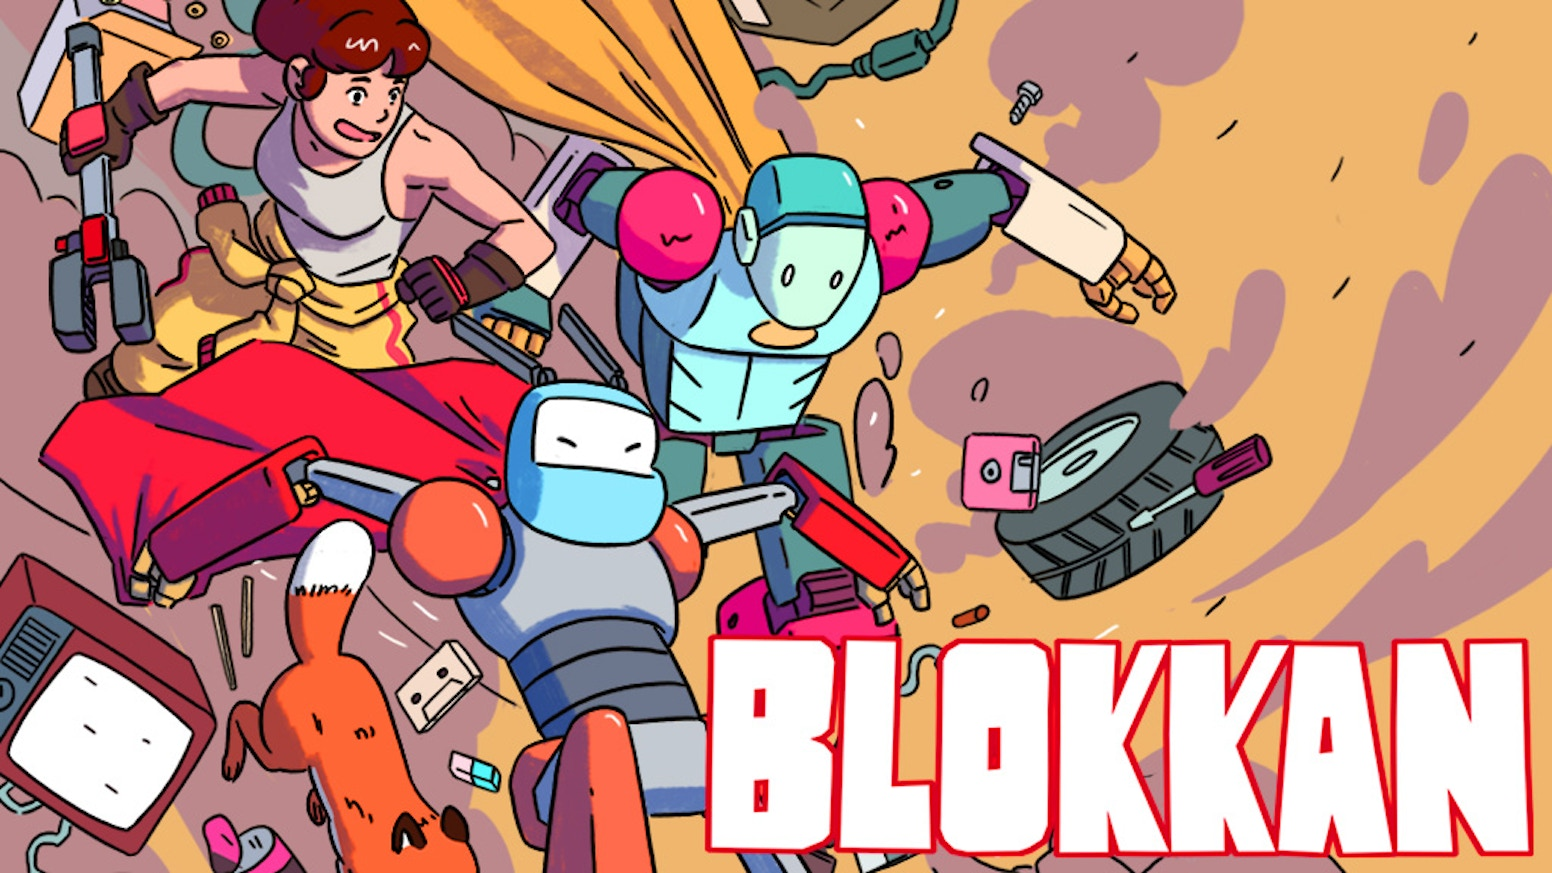 Action-Packed Robot Adventures in an Epic Graphic Novel!